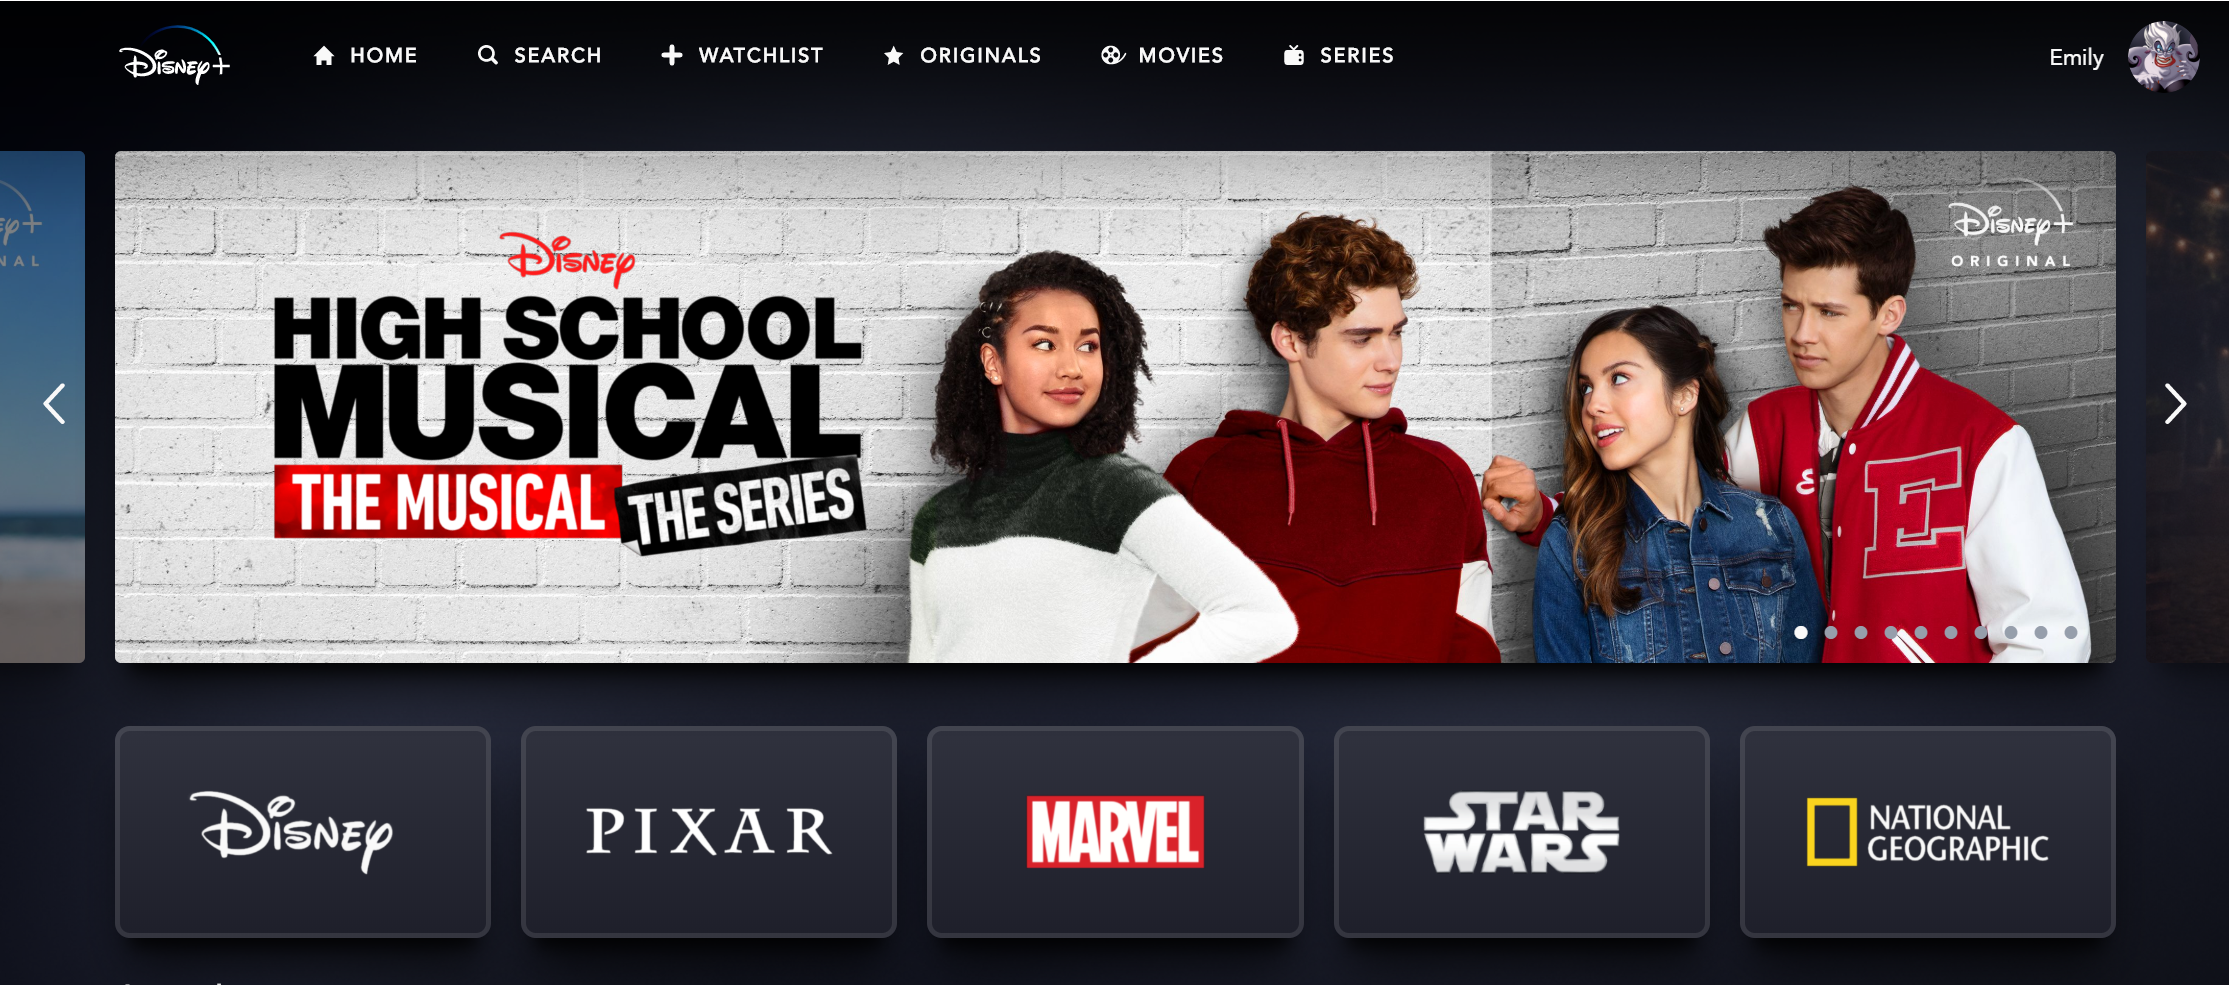 A screenshot of the heading of Disney+ with an advertisement for High School Musical The Series across the top.